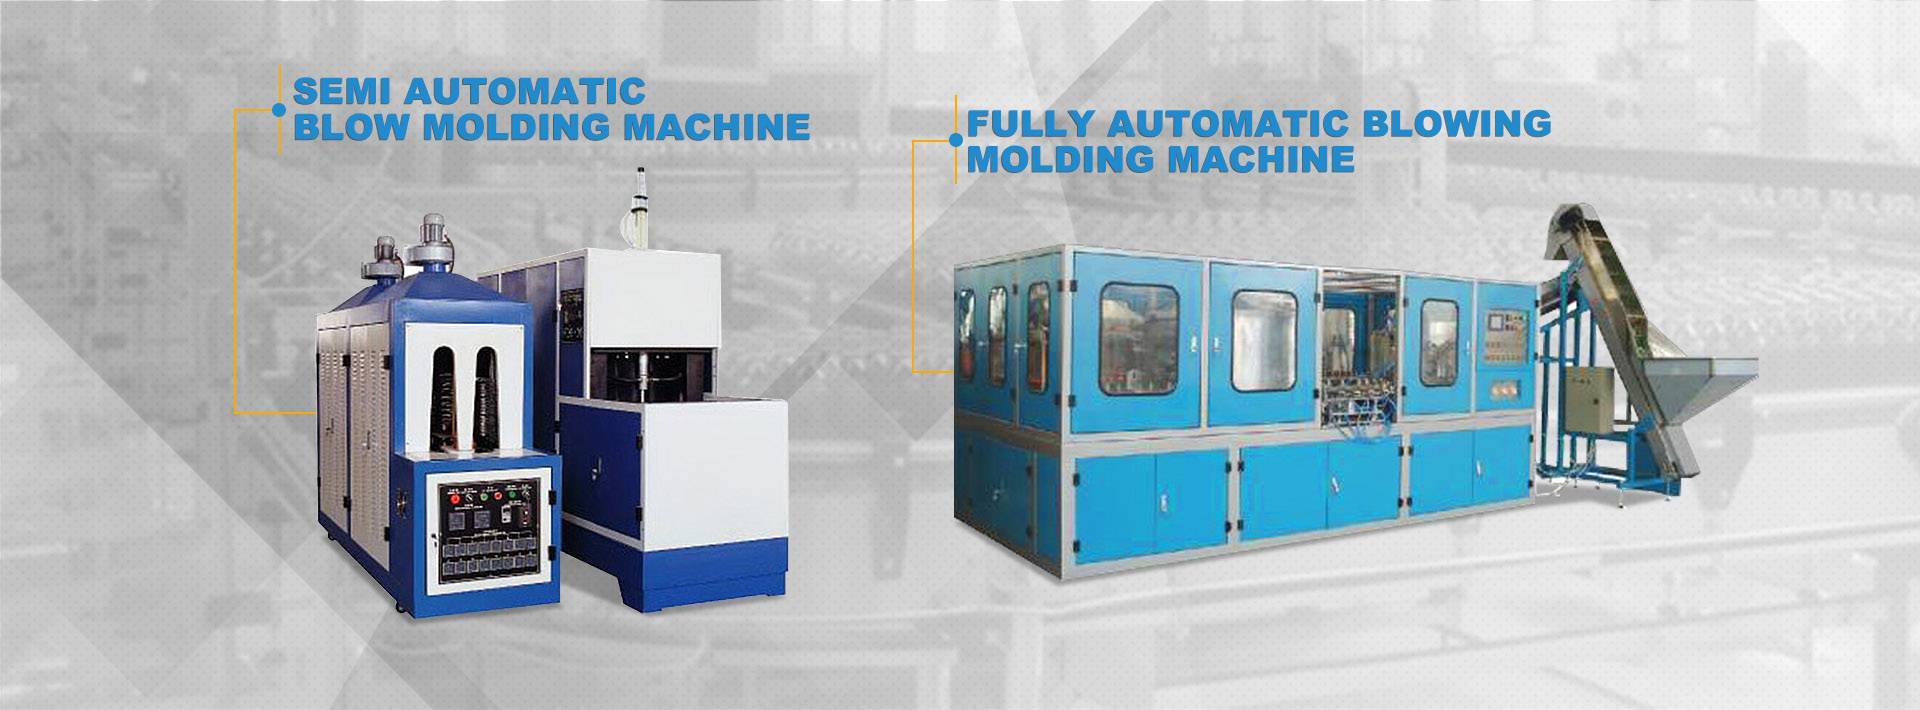 Semi Automatisk Blow Molding Machine